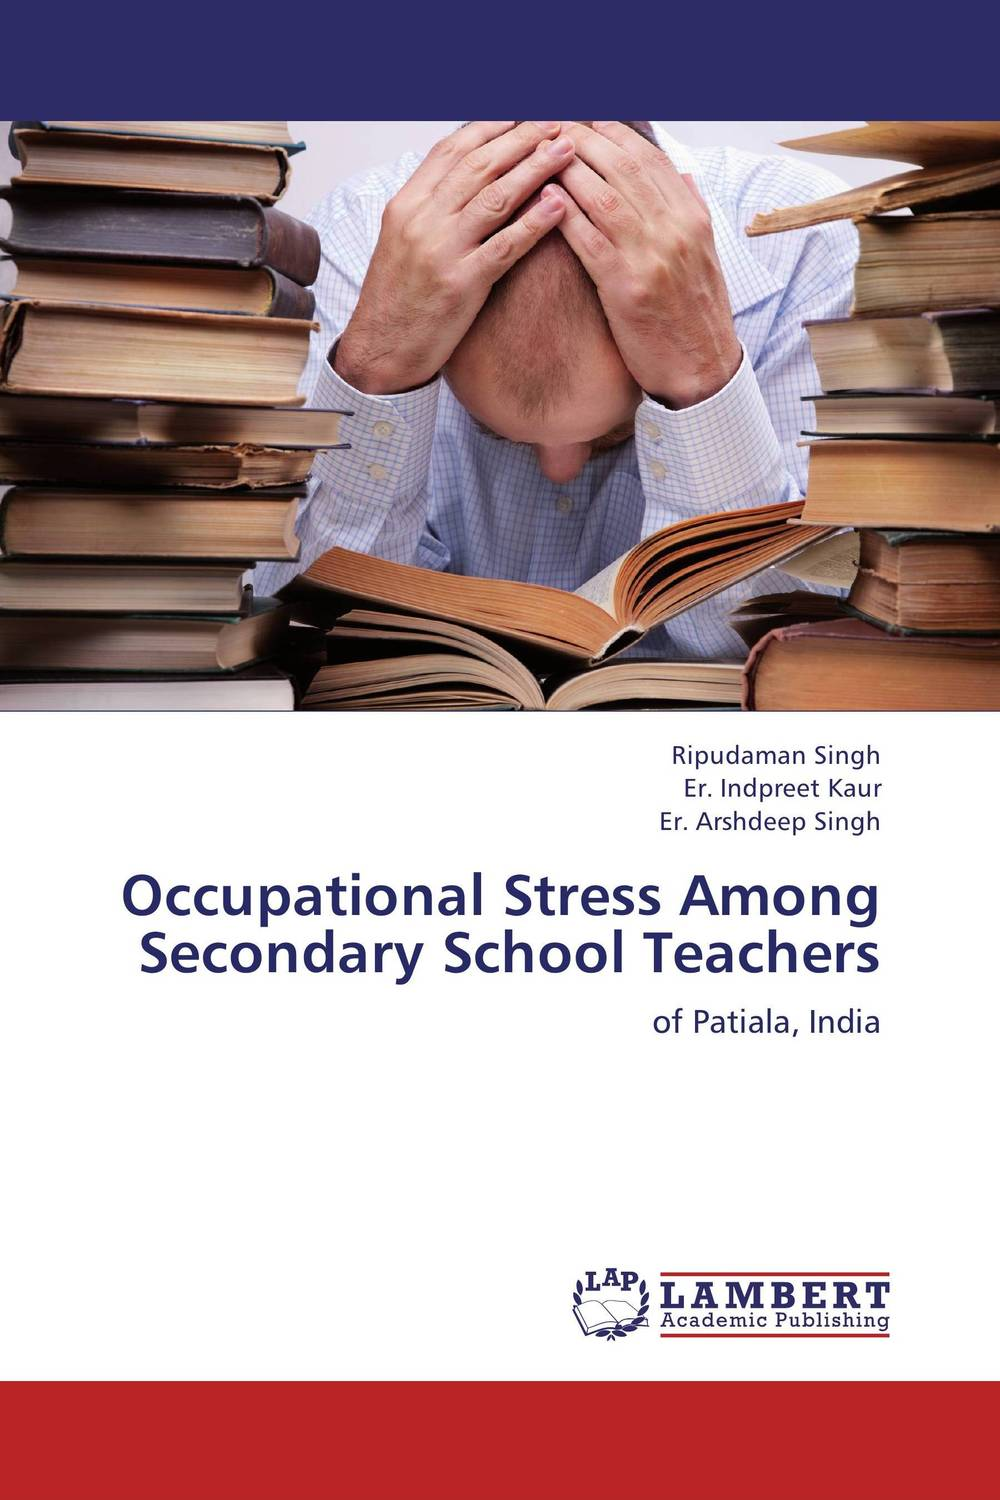 Occupational Stress Among Secondary School Teachers dr ripudaman singh mrs arihant kaur bhalla and er indpreet kaur stress among bank employees